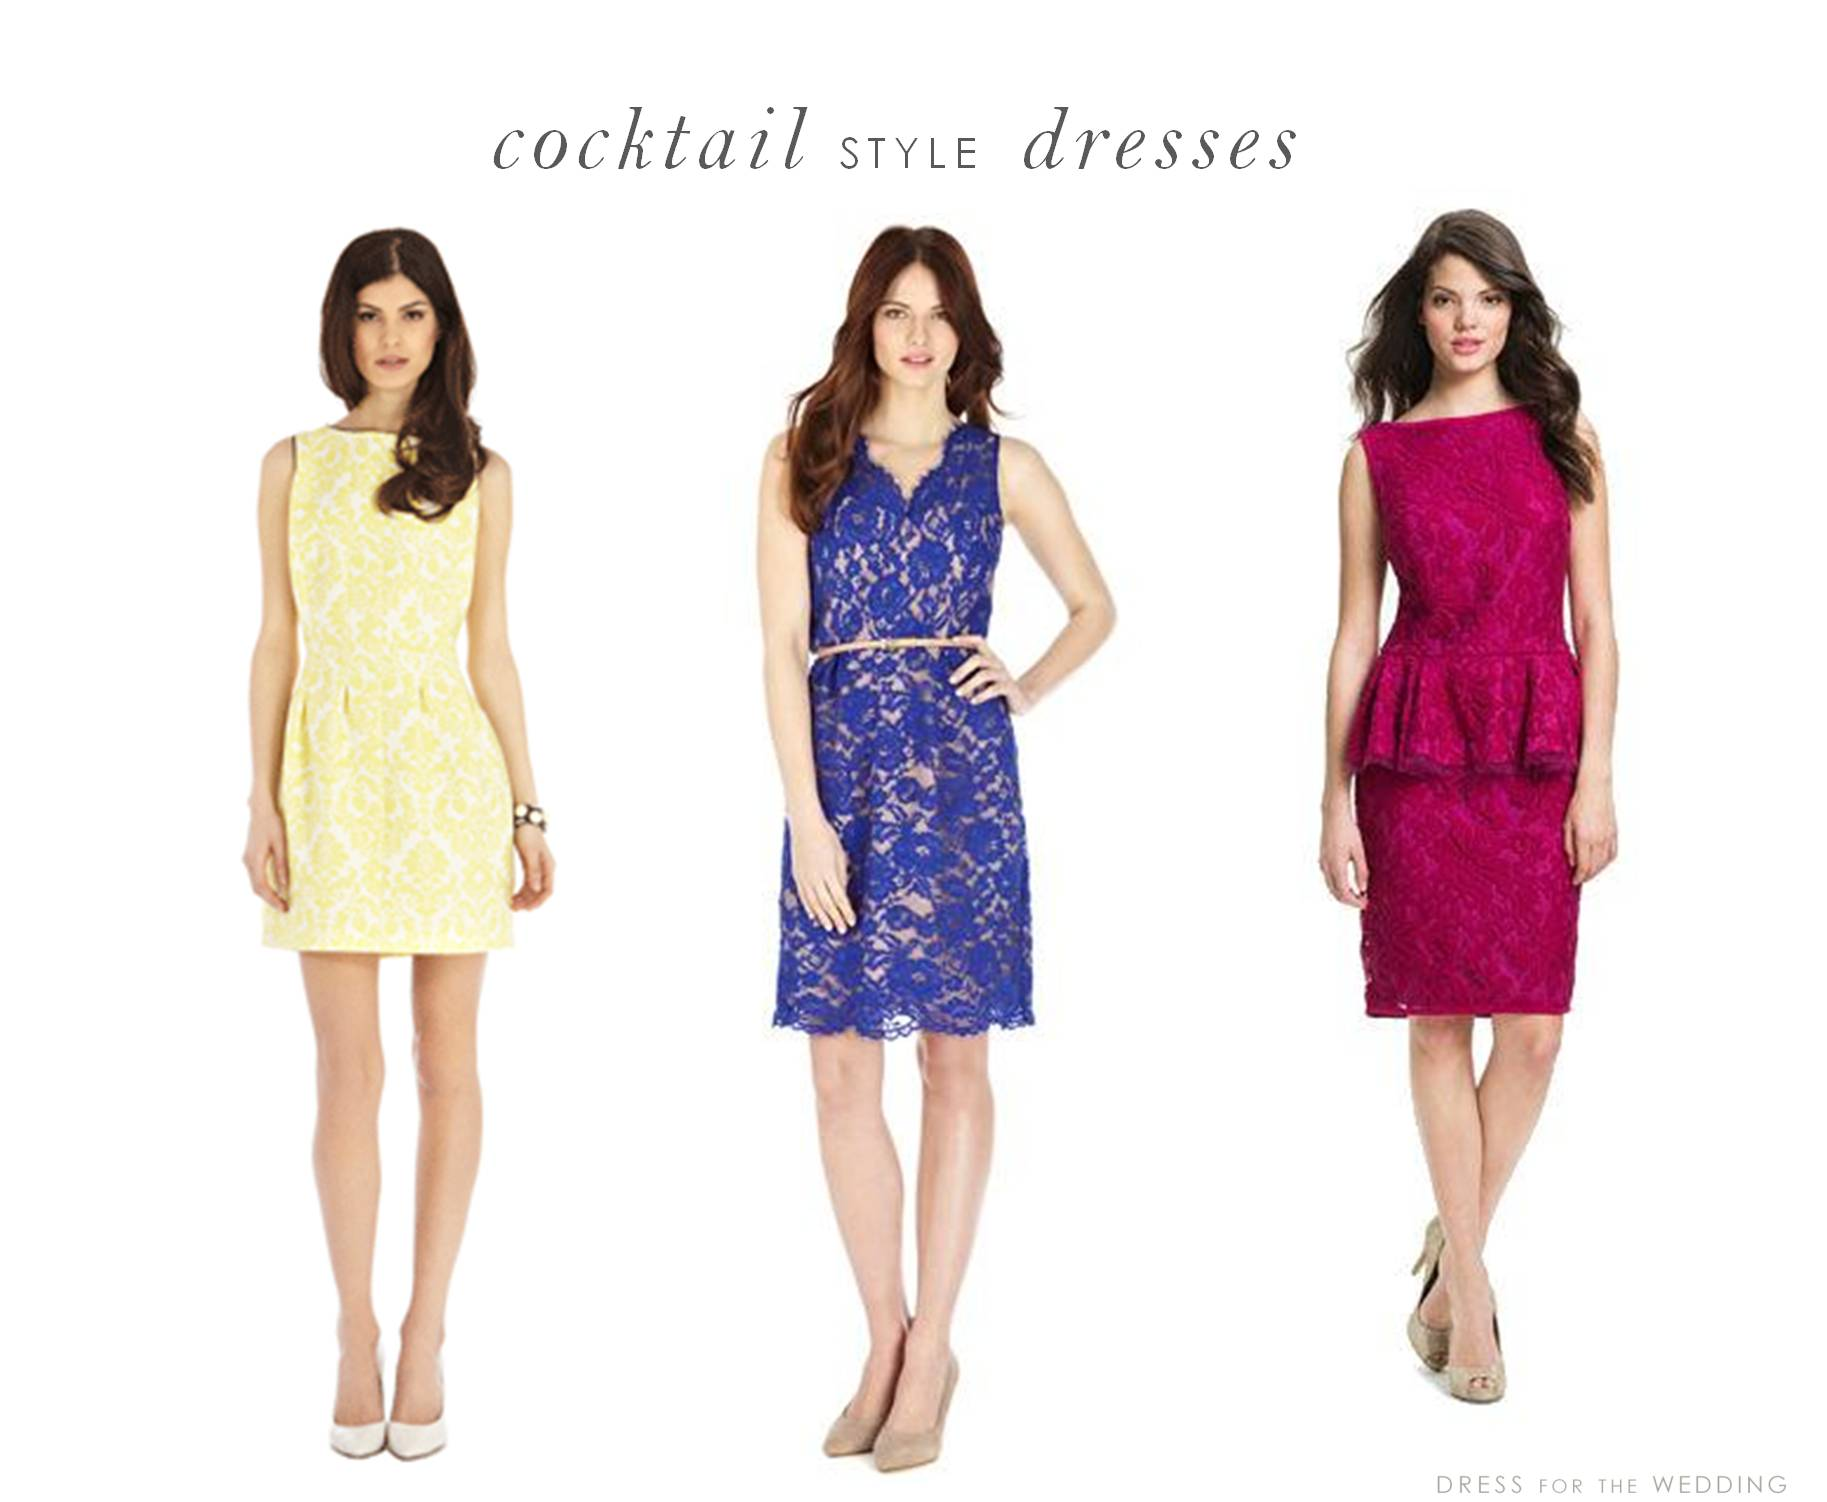 afternoon wedding cocktail dresses for wedding Dresses for Wedding Guests